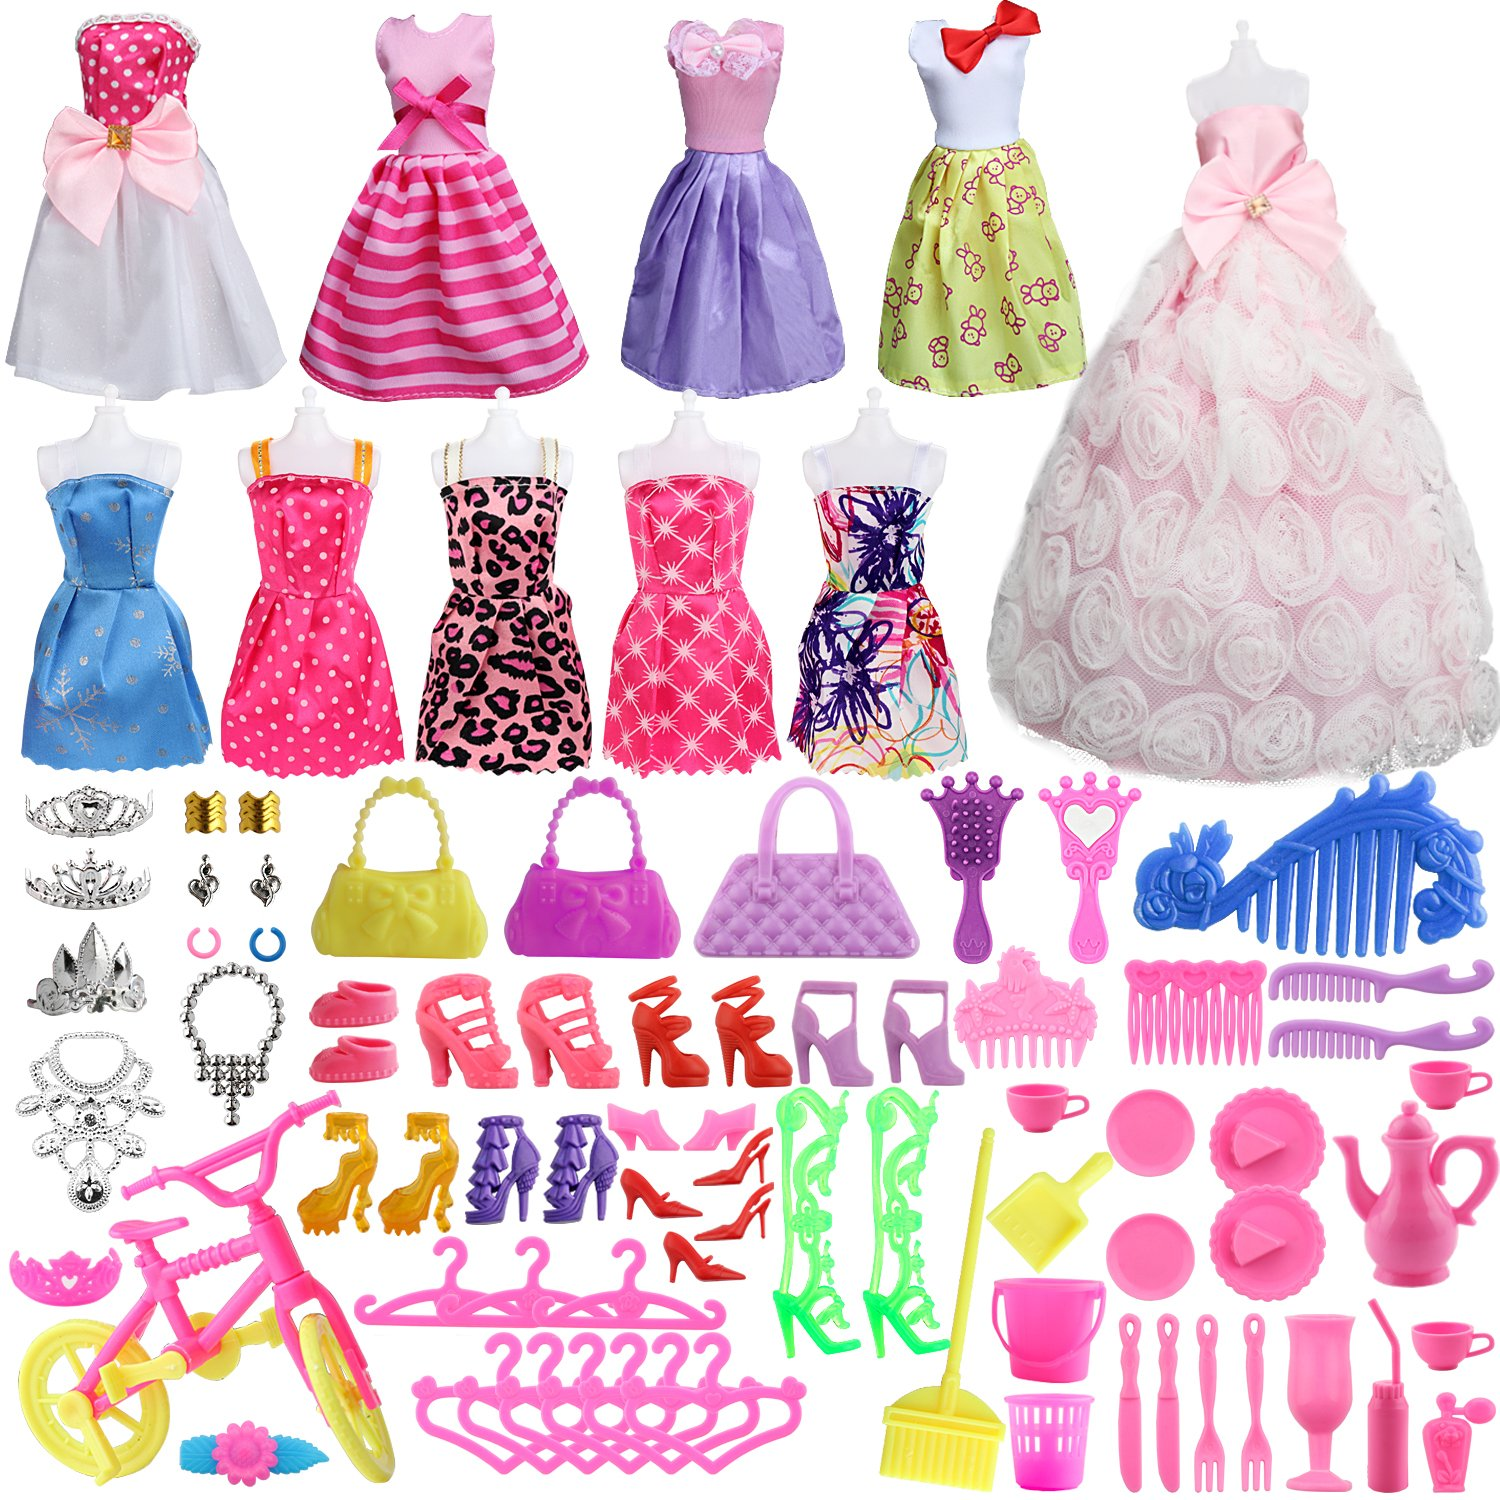 SOTOGO 85 Pcs Barbie Doll Clothes Set Include 10 Pack Barbie Clothes Party Grown Outfits(Color Random) And 75 Pcs Different Barbie Doll Accessories For Little Girl